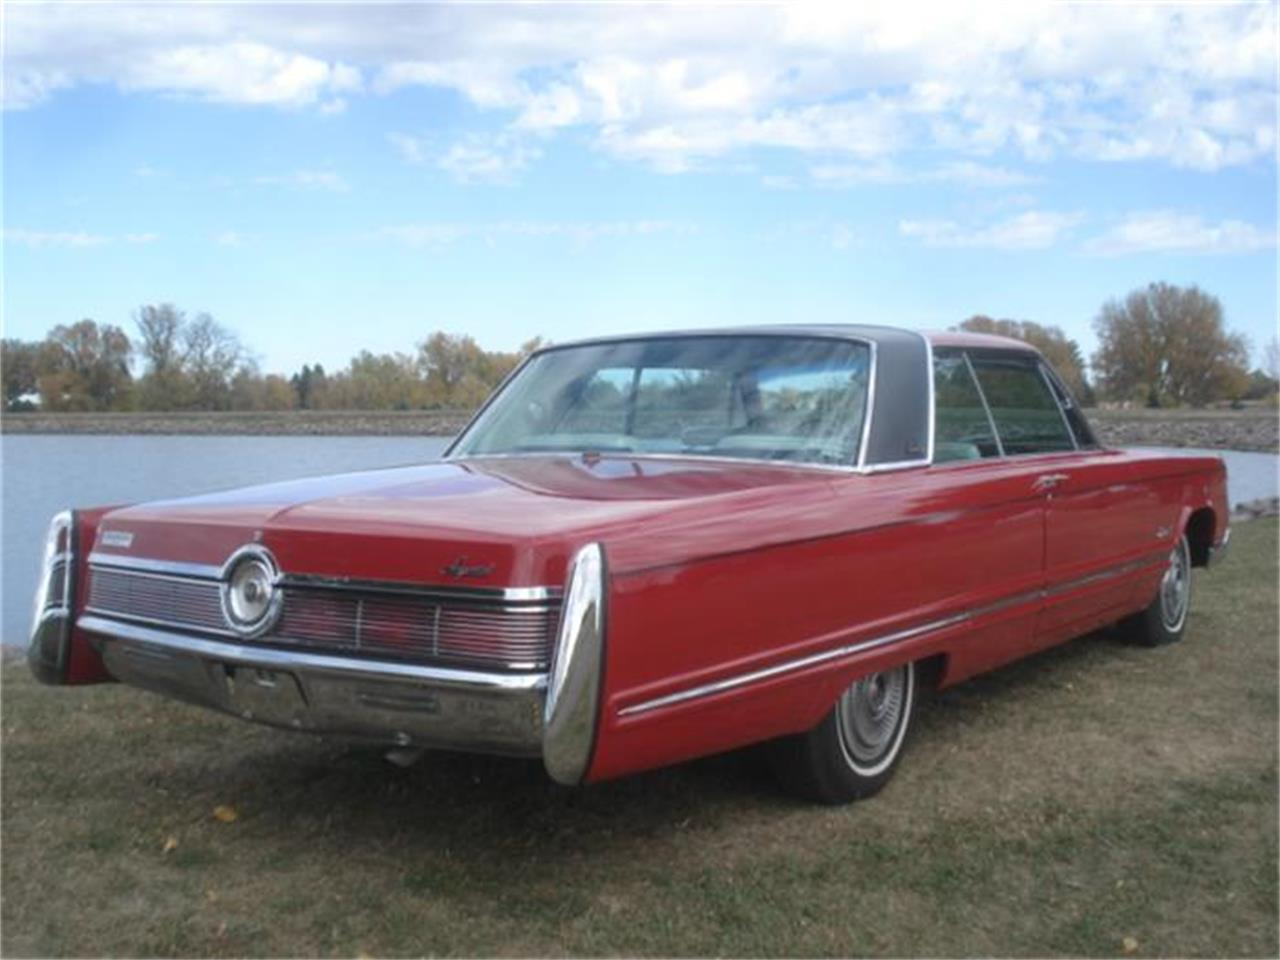 Large Picture of 1967 Chrysler Imperial located in South Dakota - $16,550.00 - FNNW